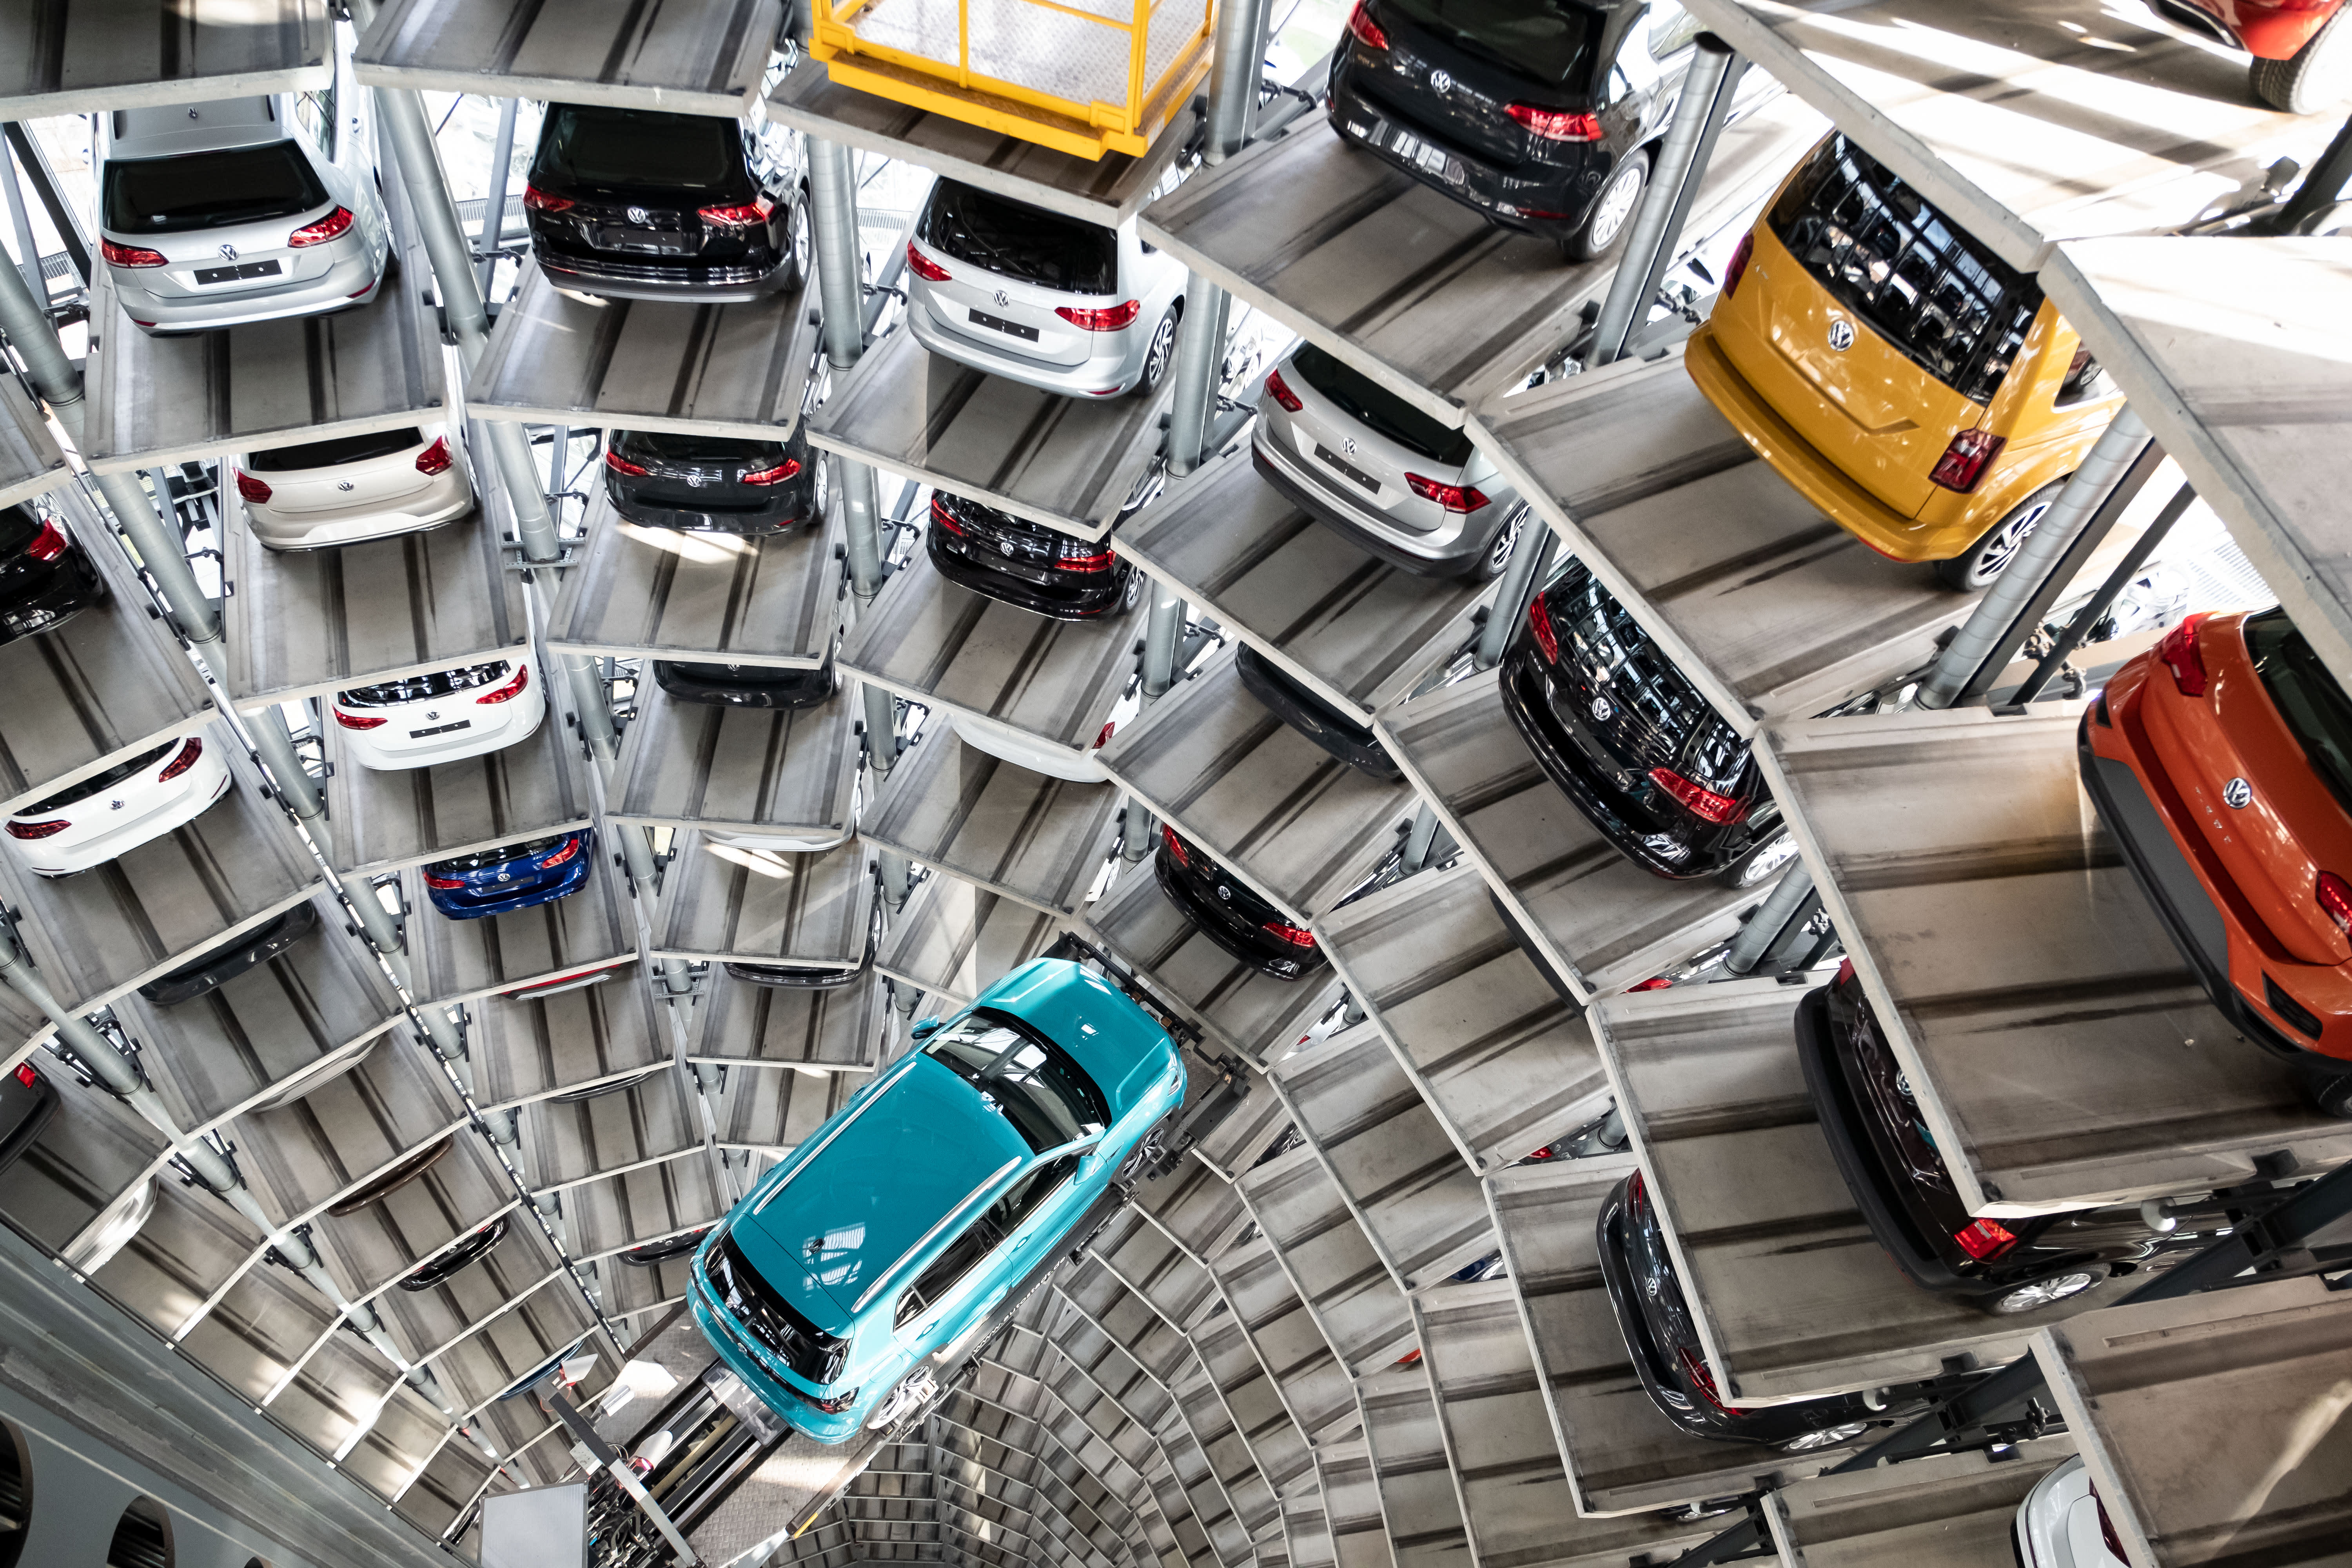 The Volkswagen T-Cross model stands on a lifting platform in a car tower on the Volkswagen factory premises.